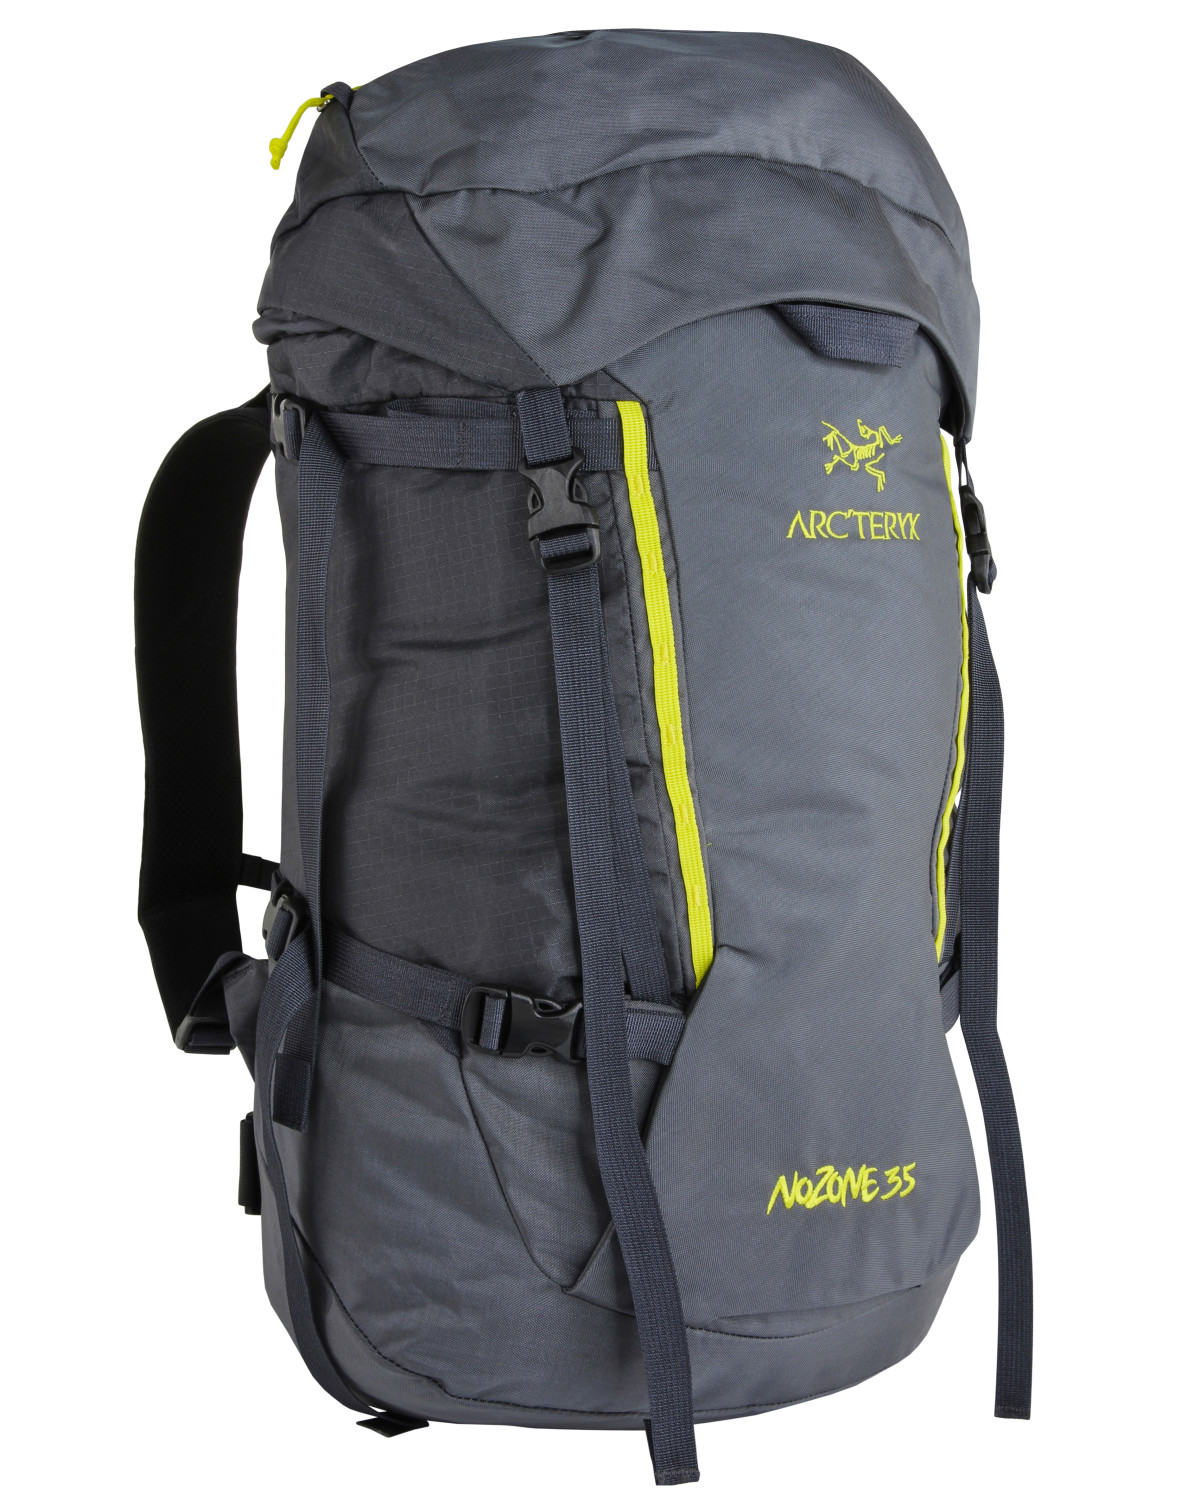 Nozone 35 Backpack